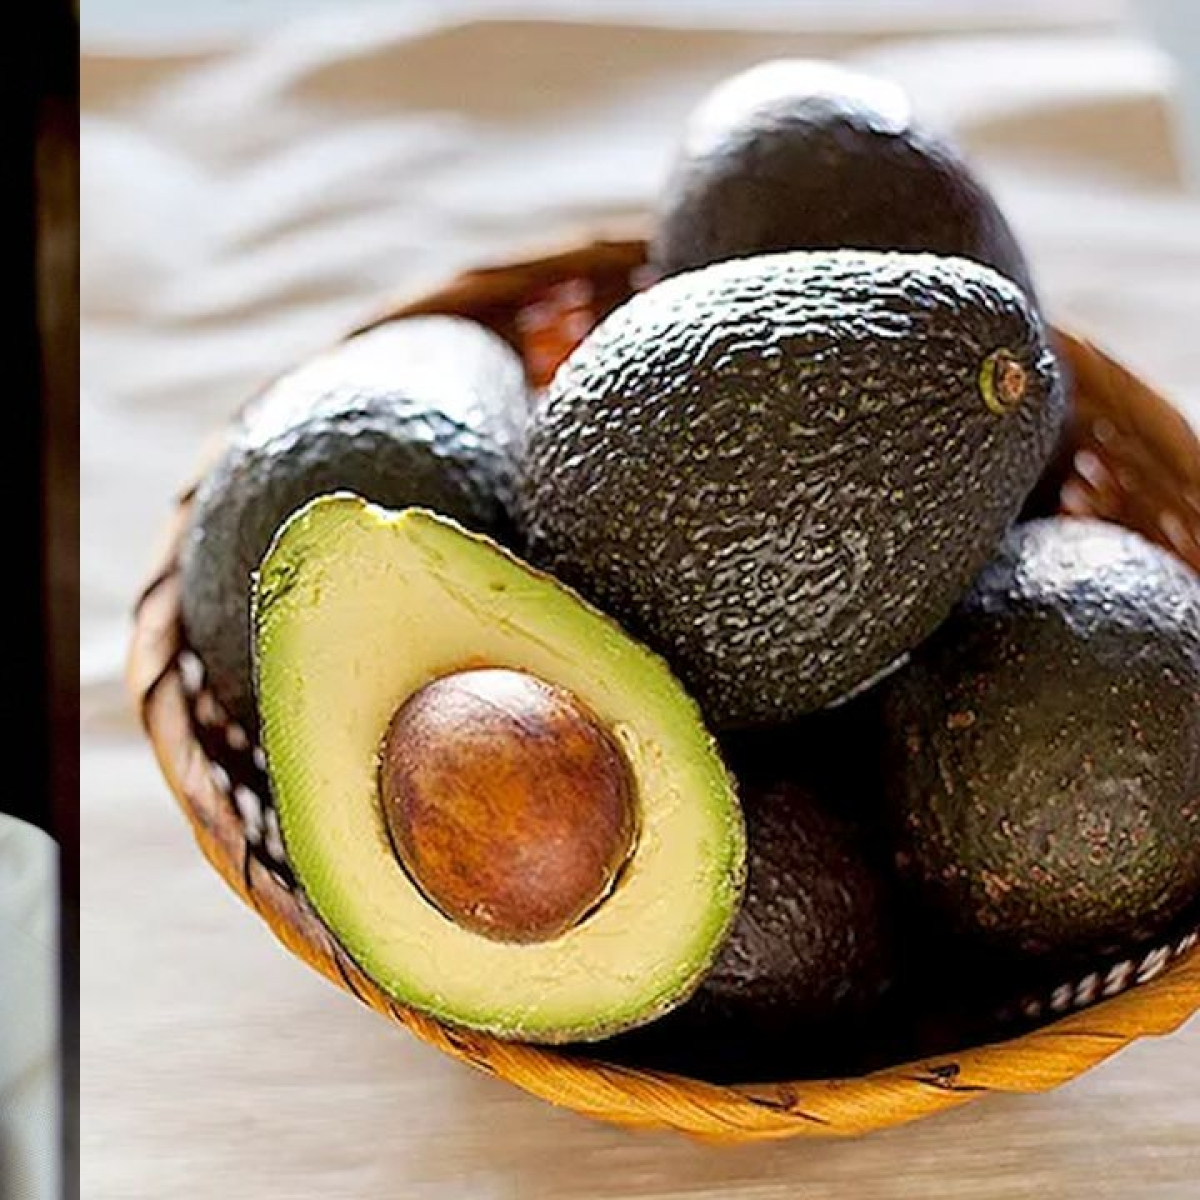 What is an avocado? Why did Chidambaram use that term to mock Nirmala?